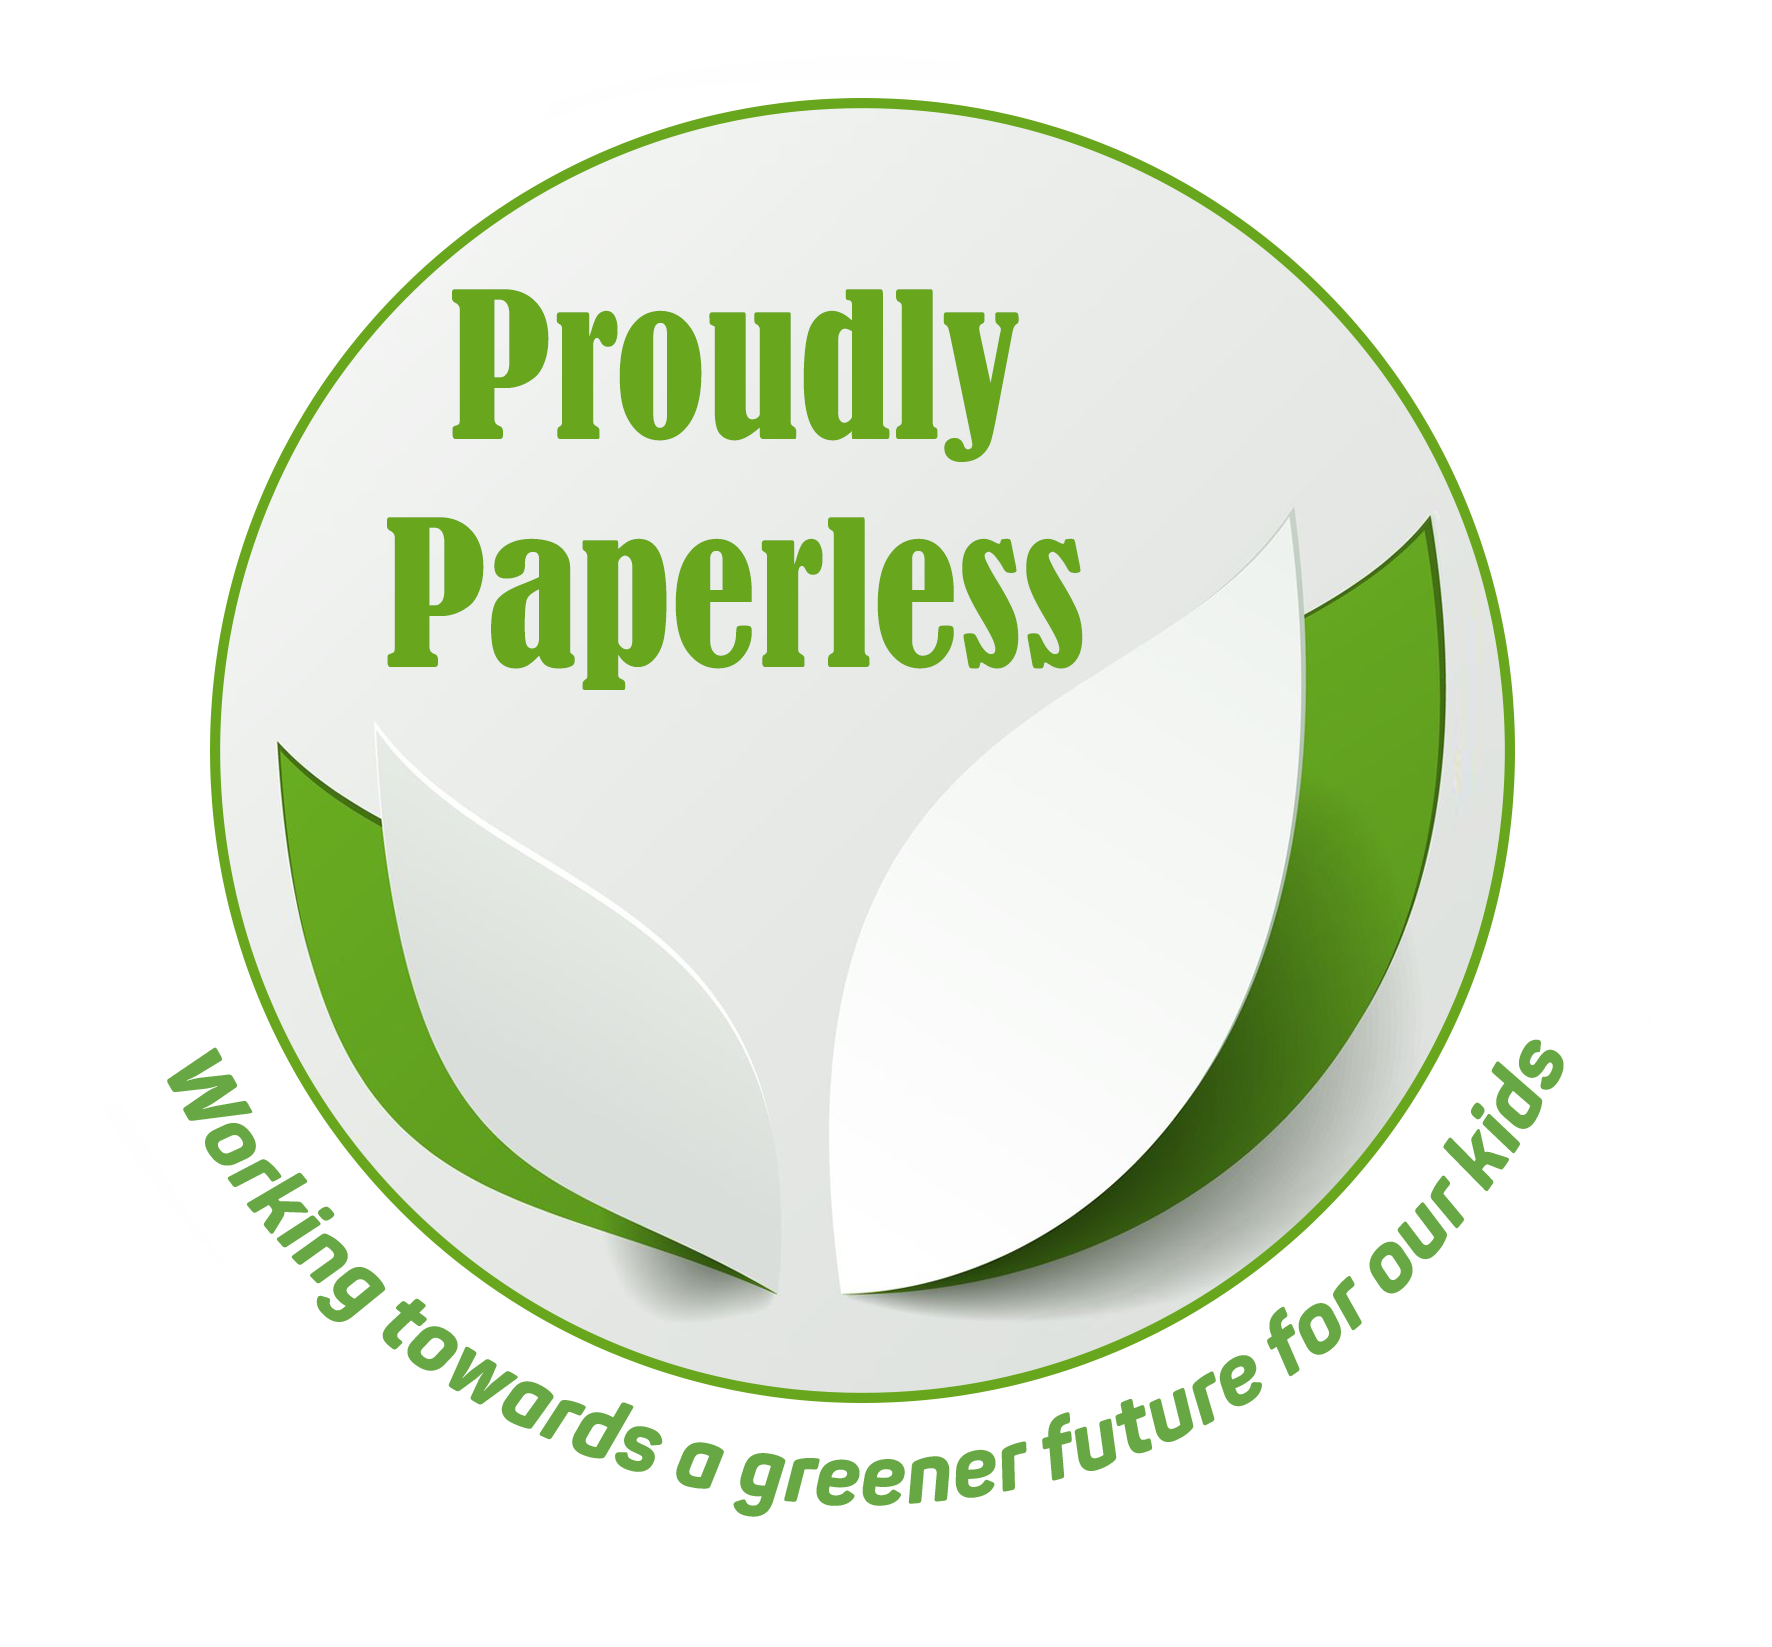 Wholesale Baby Australia striving to be Proudly Paperless, more sustainable, working towards a greener future for our kids!